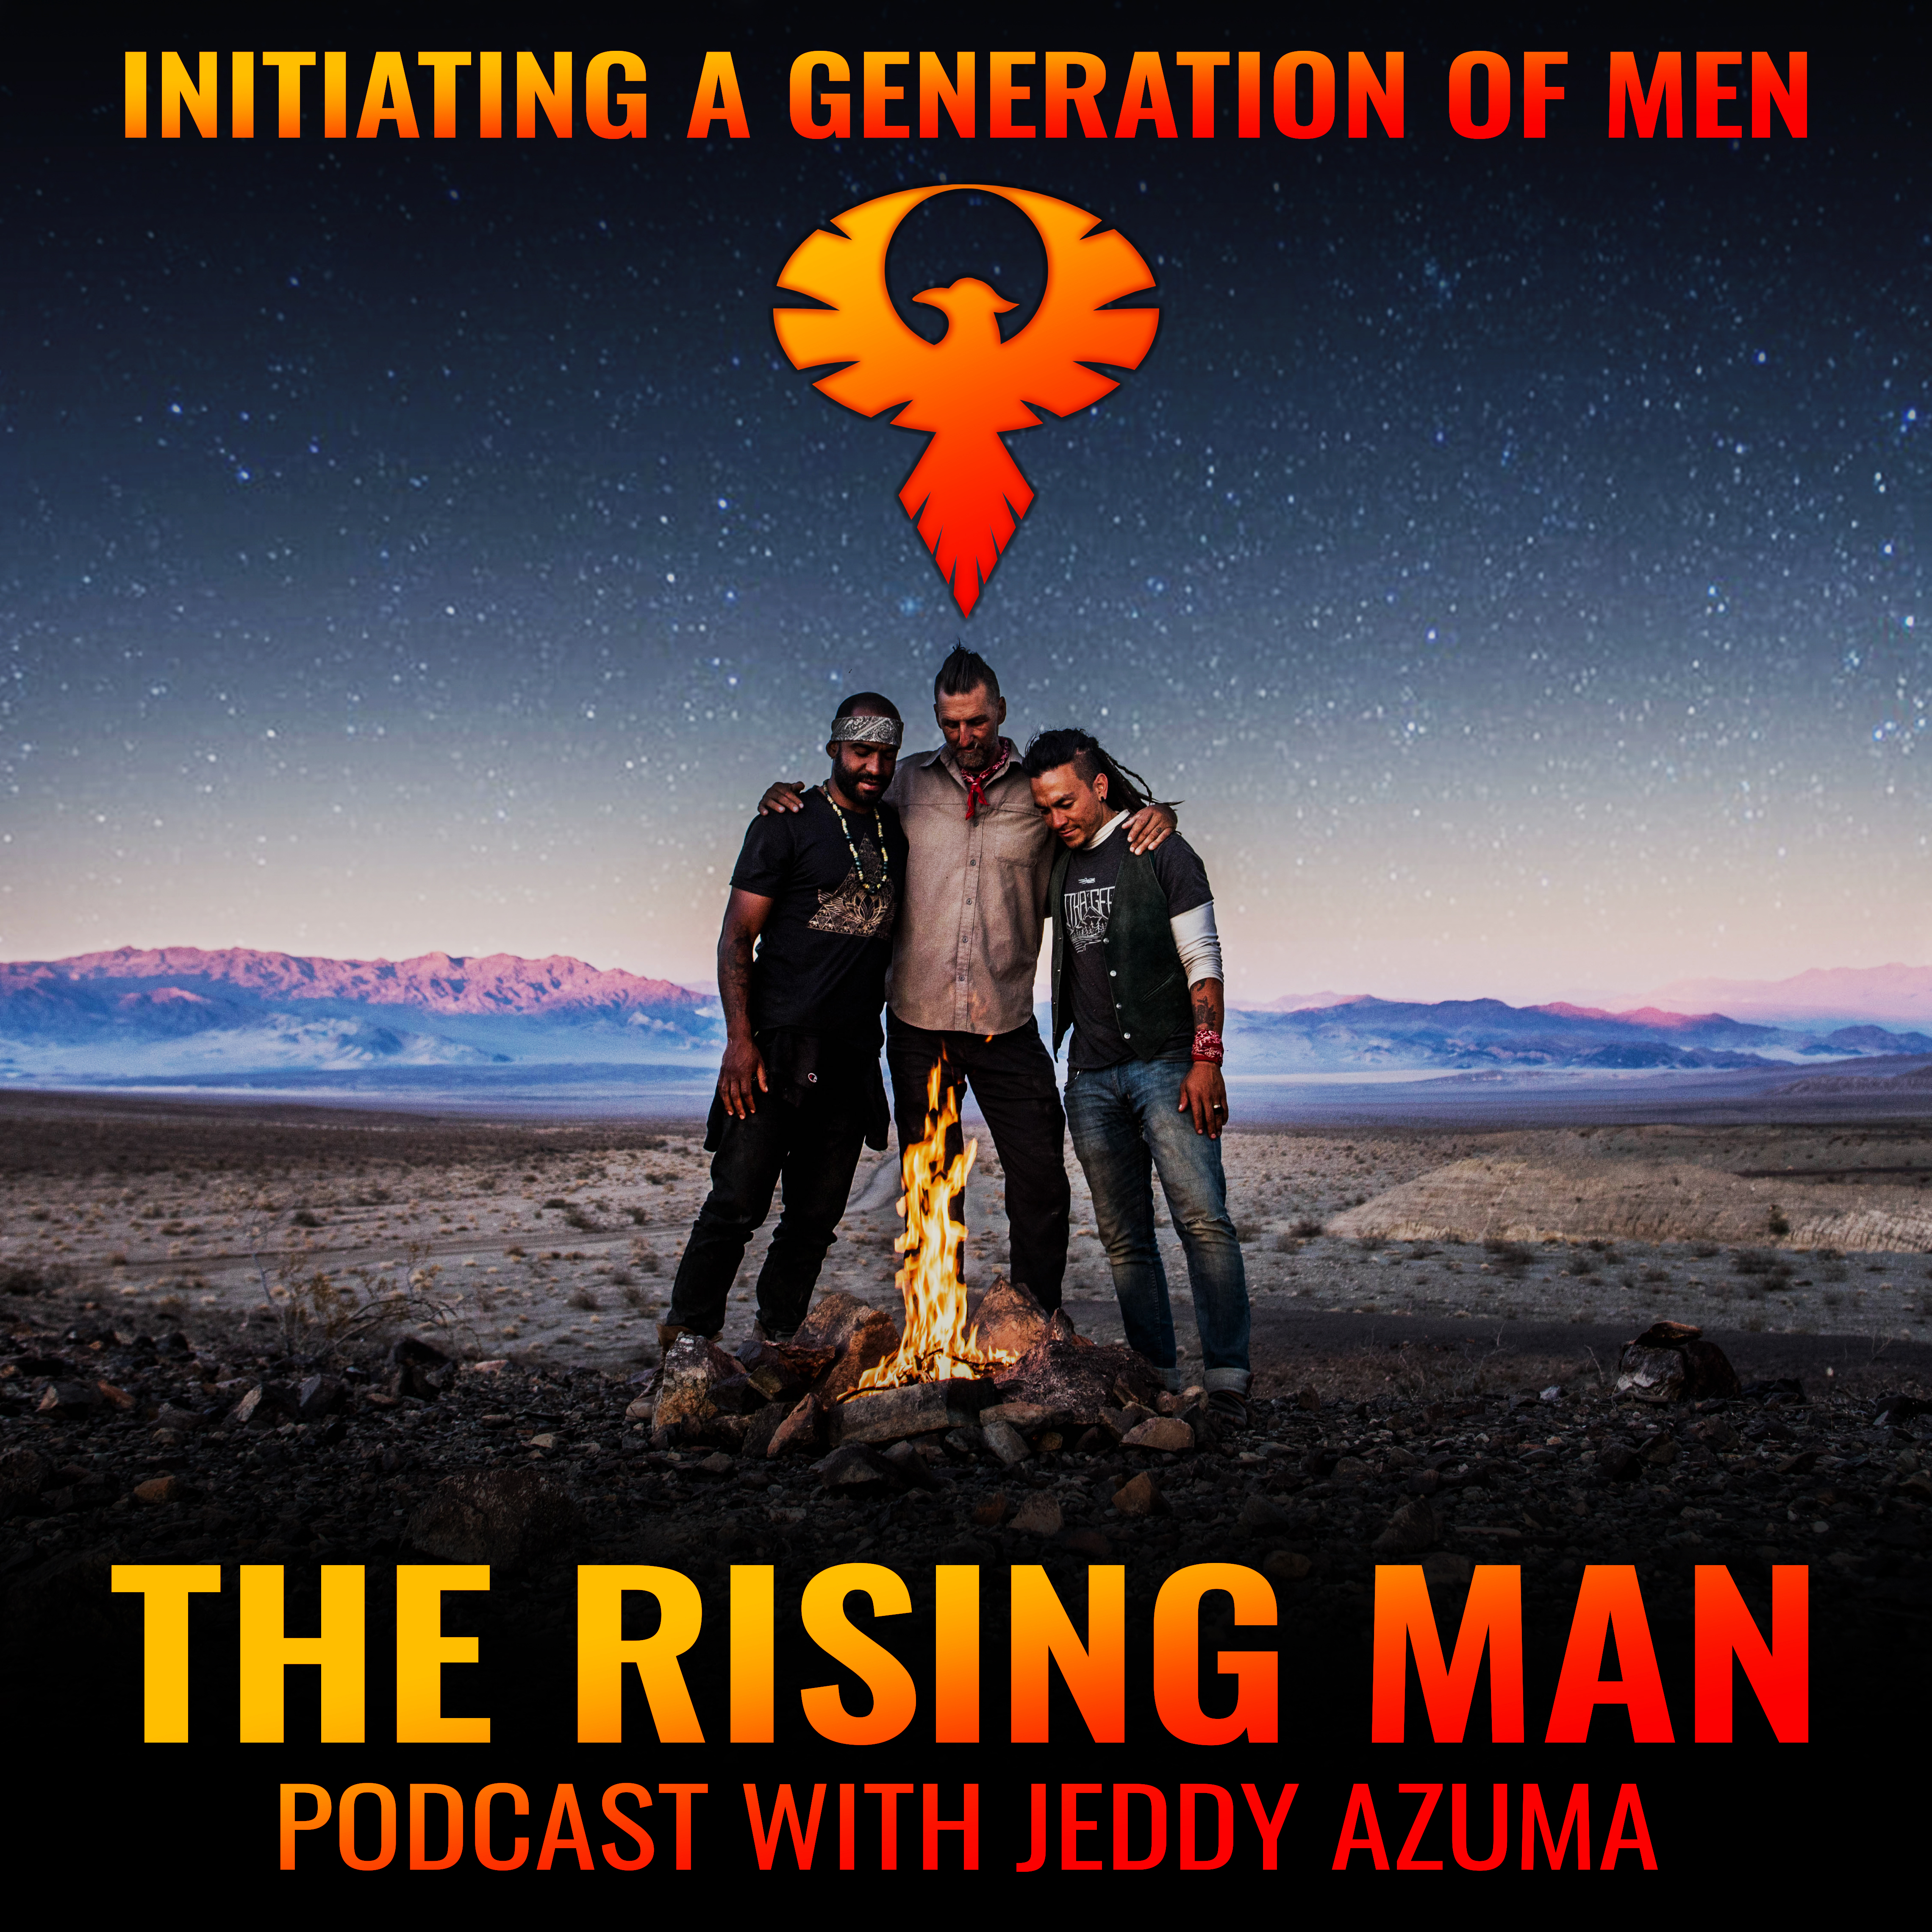 The Rising Man Podcast show art